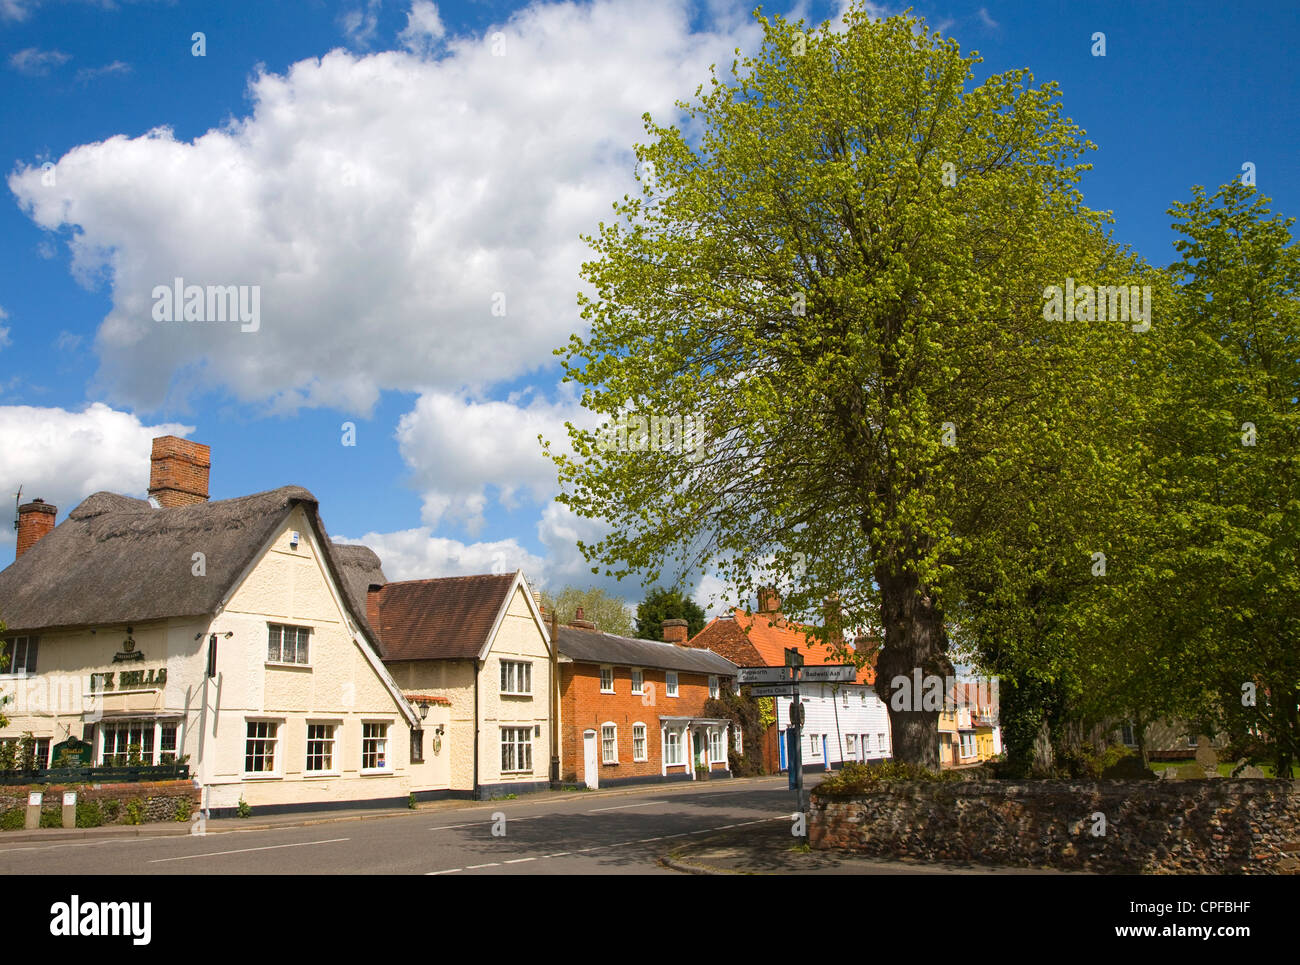 Historic, attractive buildings in the village of Walsham le Willows, Suffolk, England - Stock Image